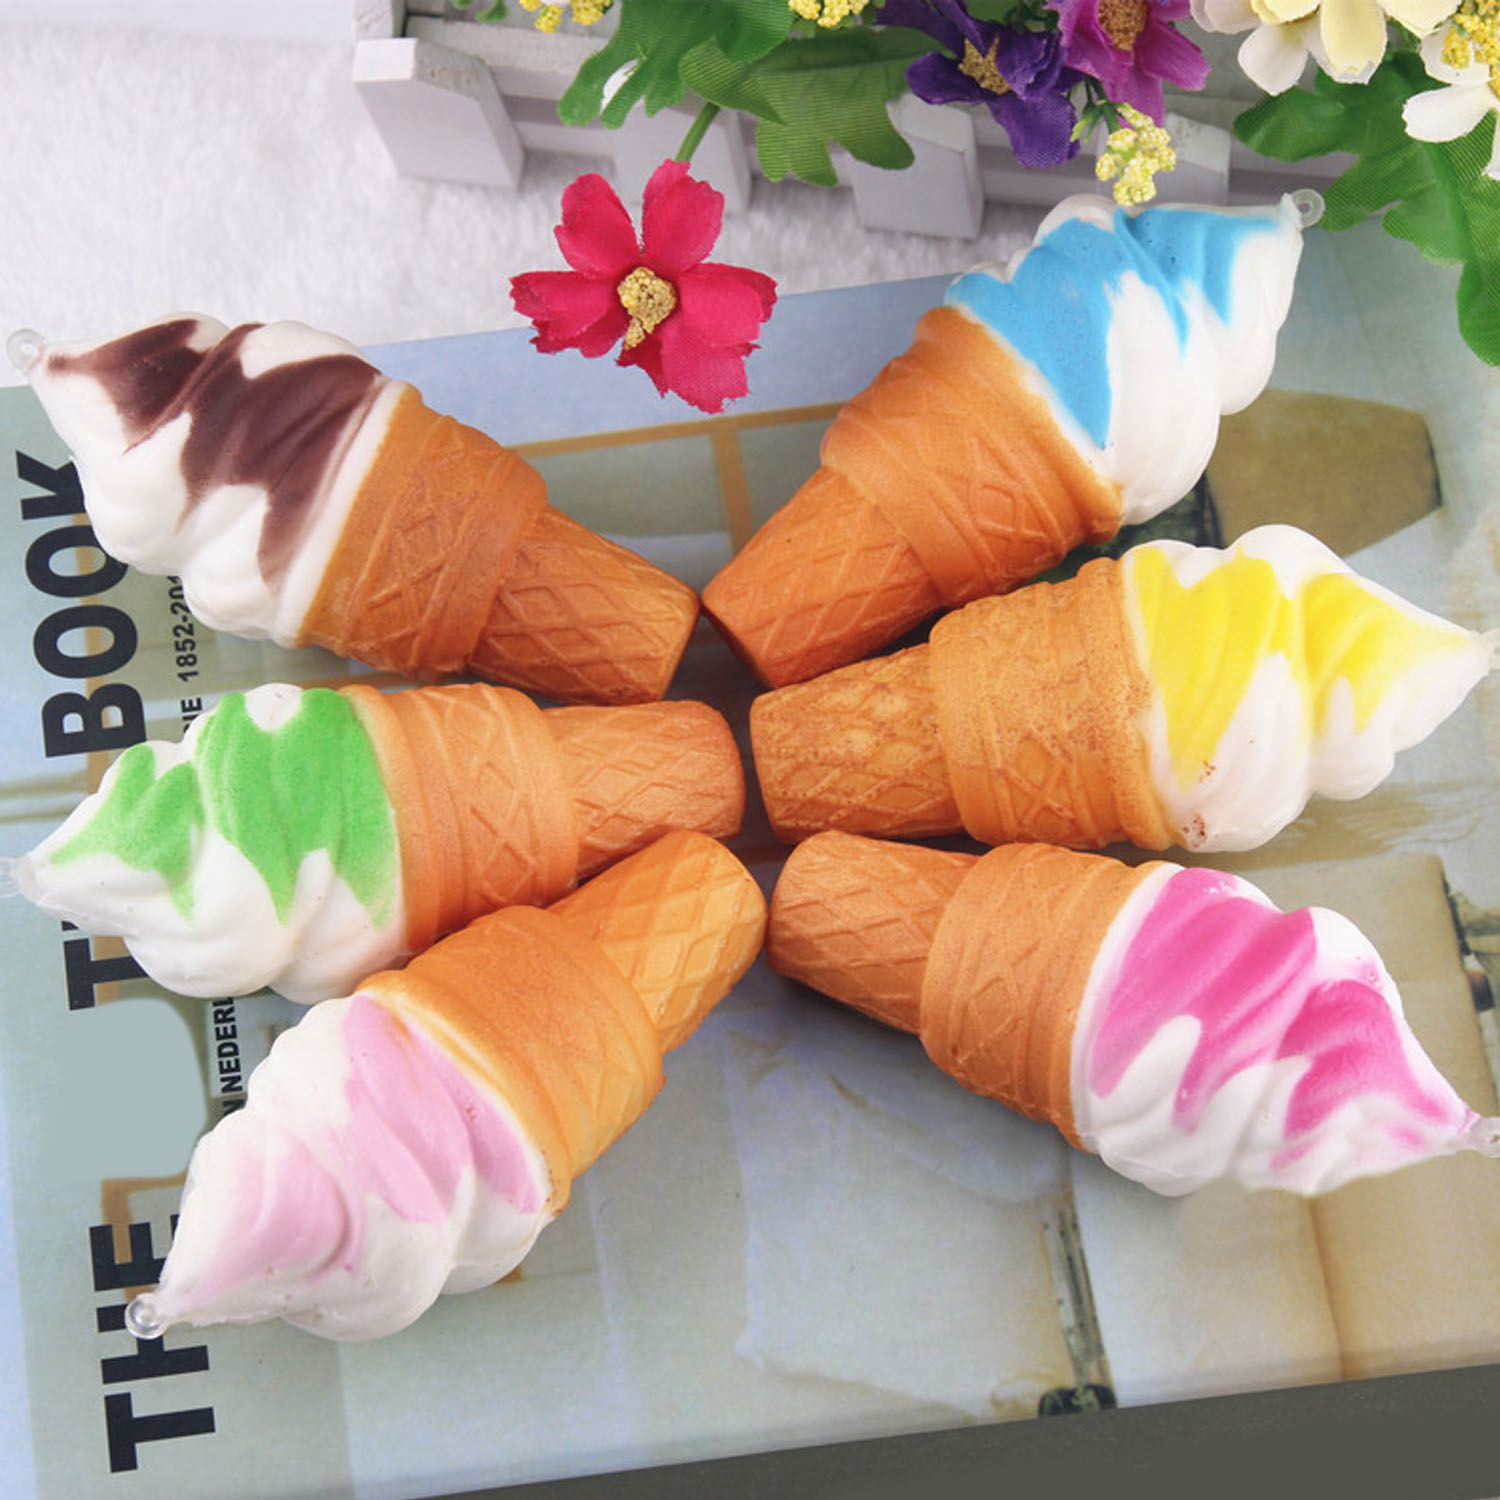 6pcs Kawaii Slow Rising Rebound Squishy Charm Ice Cream Torch Pendant Toy for Antiestress Random Color